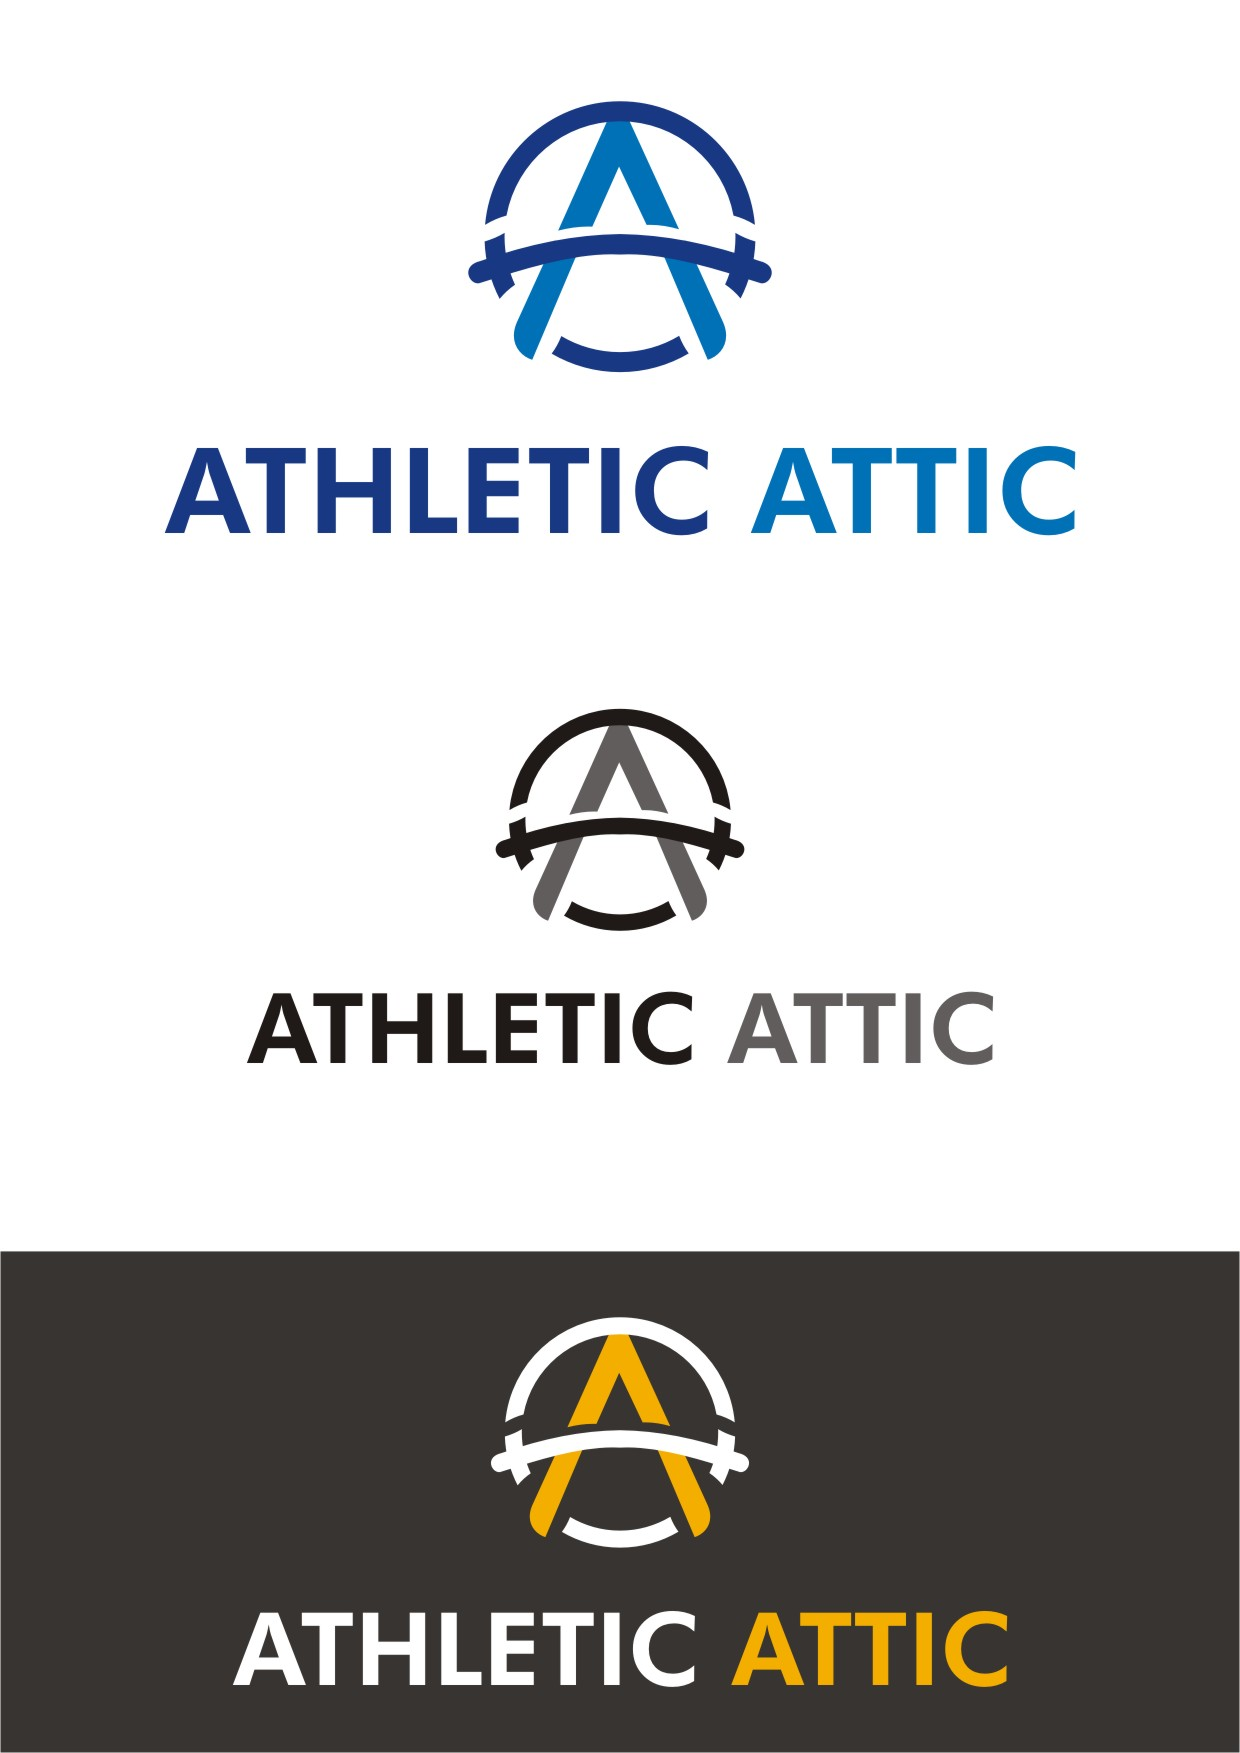 Logo Design by Spider Graphics - Entry No. 216 in the Logo Design Contest Fun Logo Design for Athletic Attic.